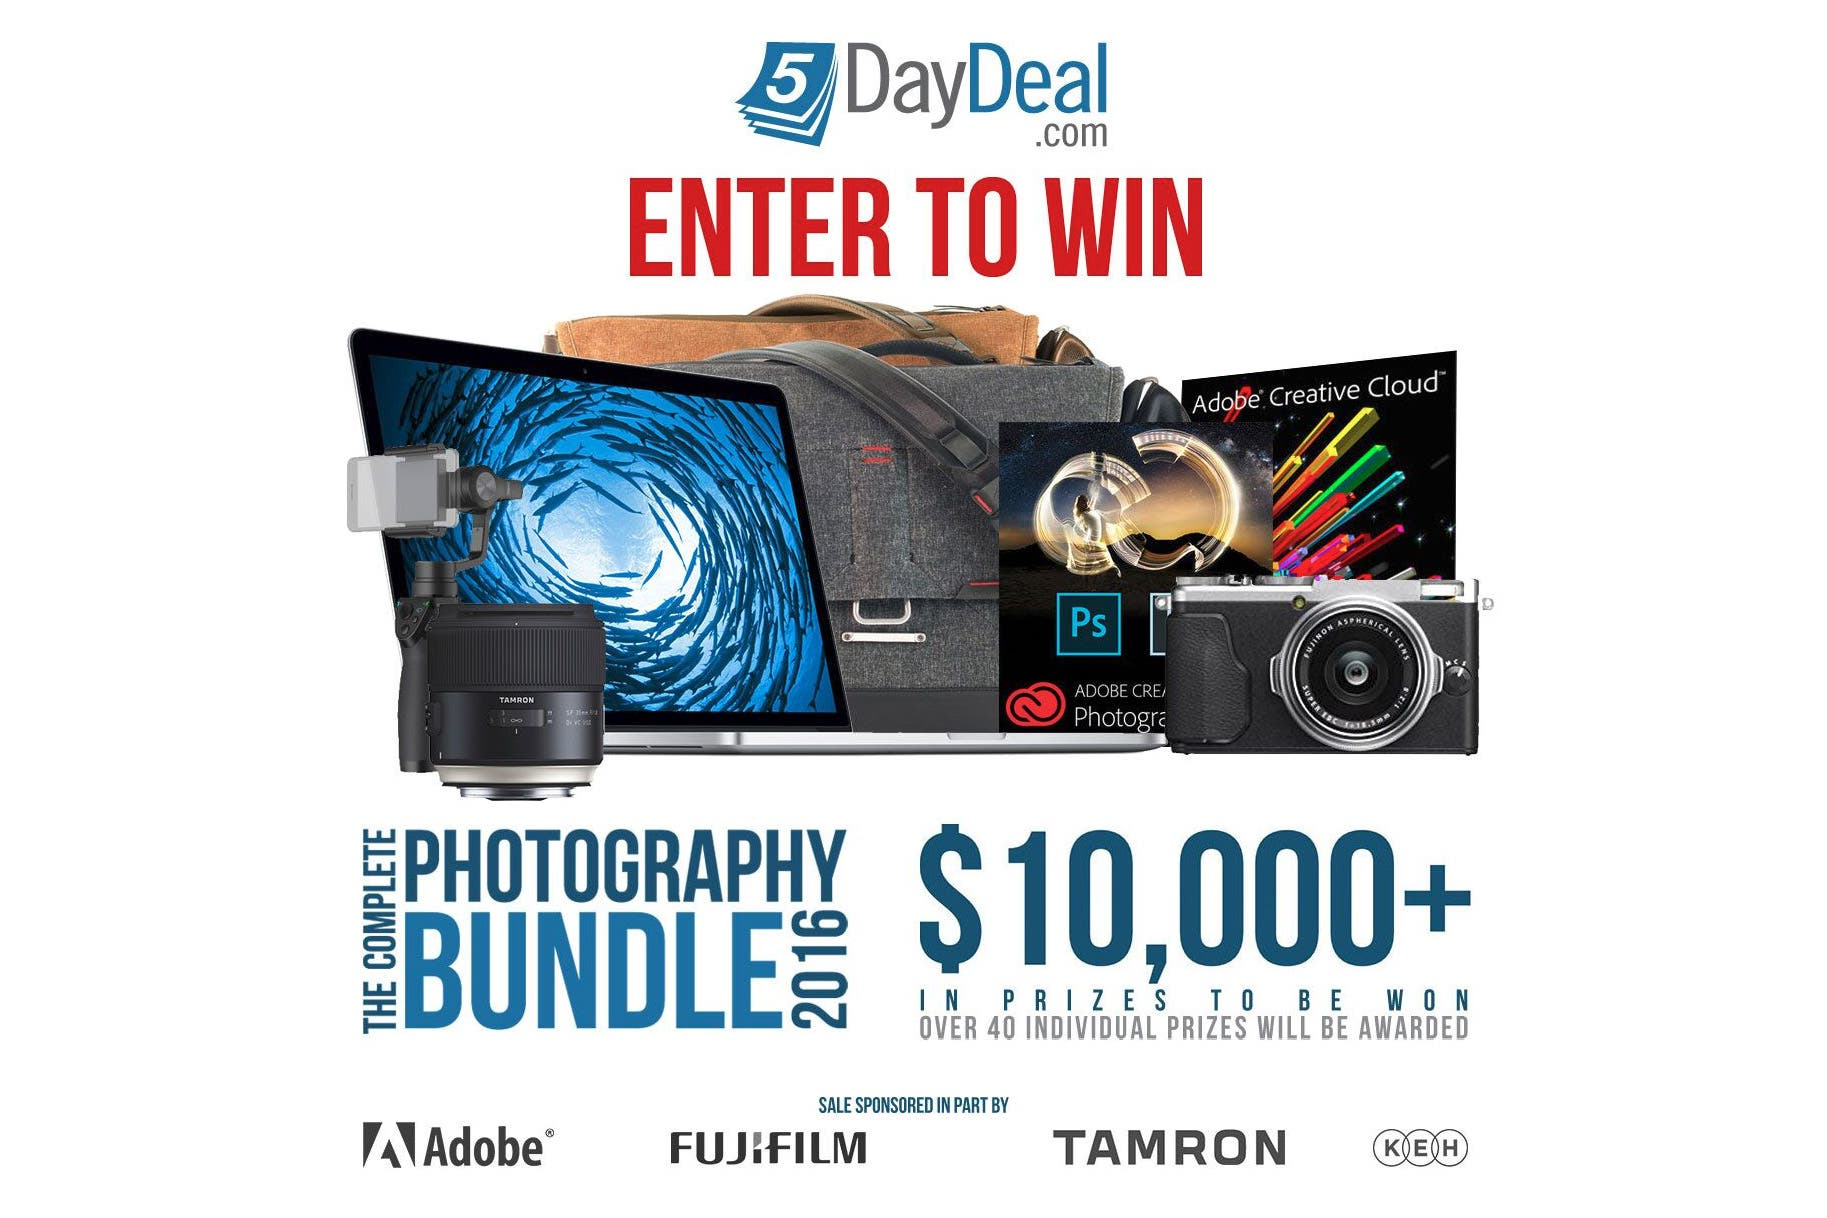 Two More Days To Take Advantage of This Insane Photo Education Deal